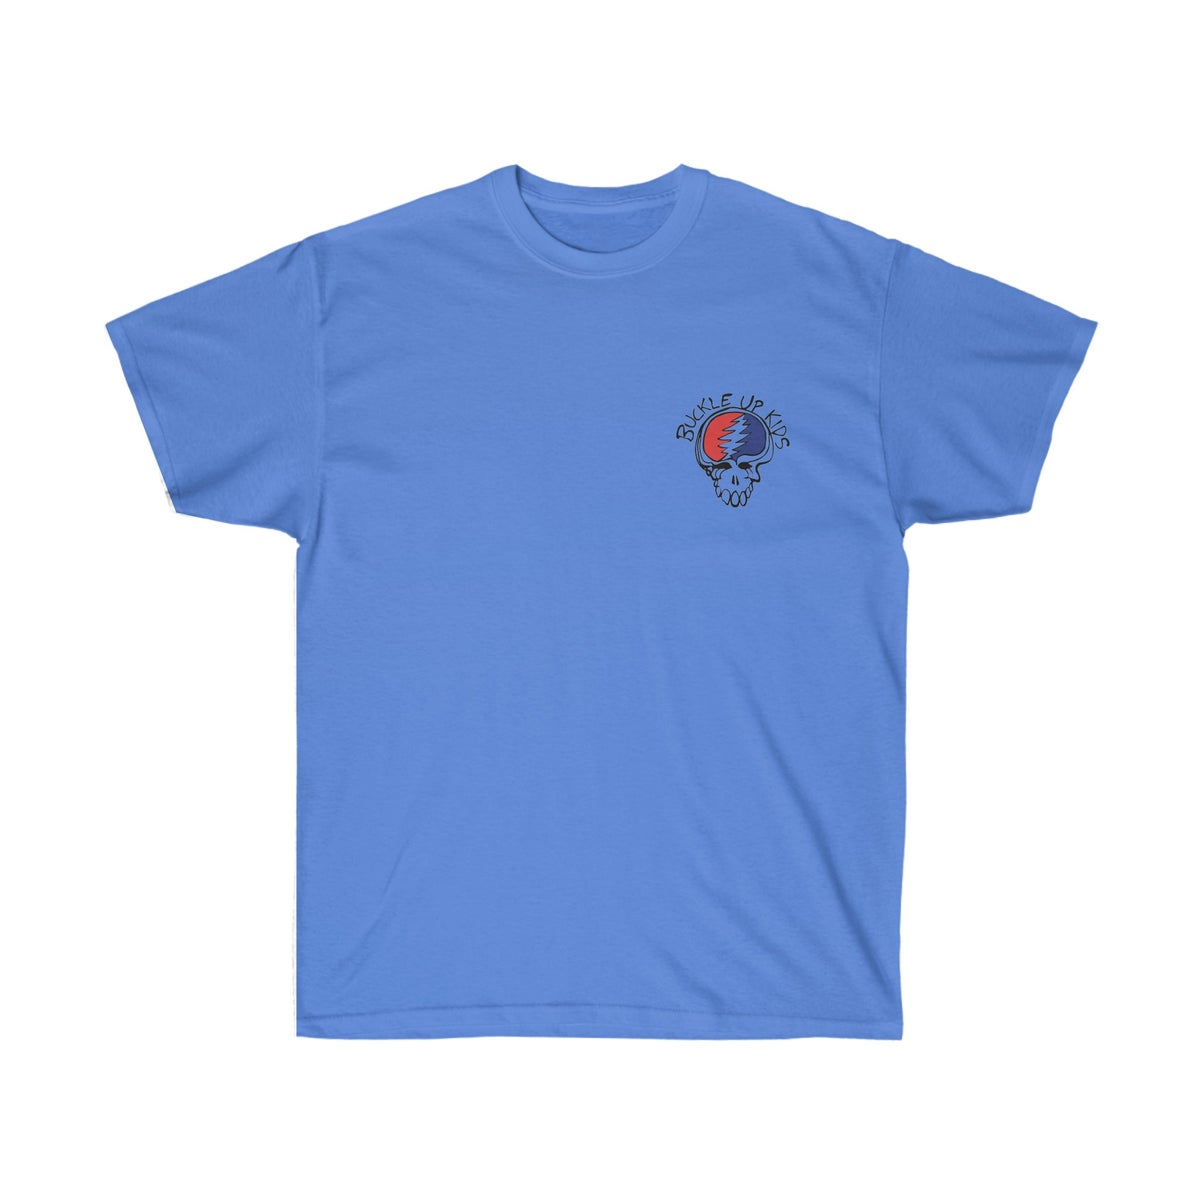 First Dead Ticket Tee!